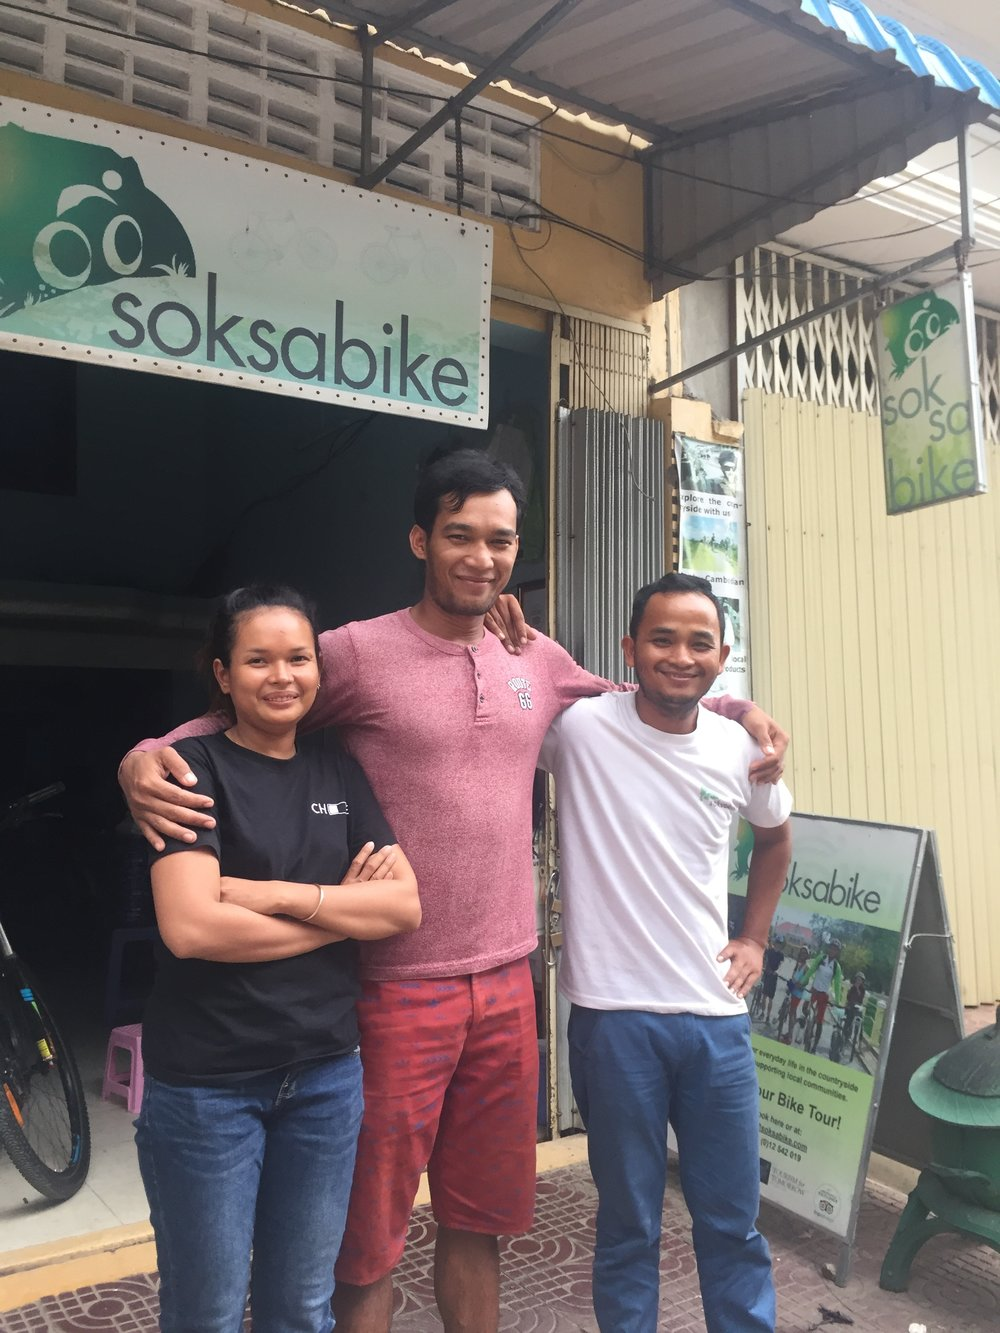 Mony, Kanha, and Phalla - Soksabike's new owners